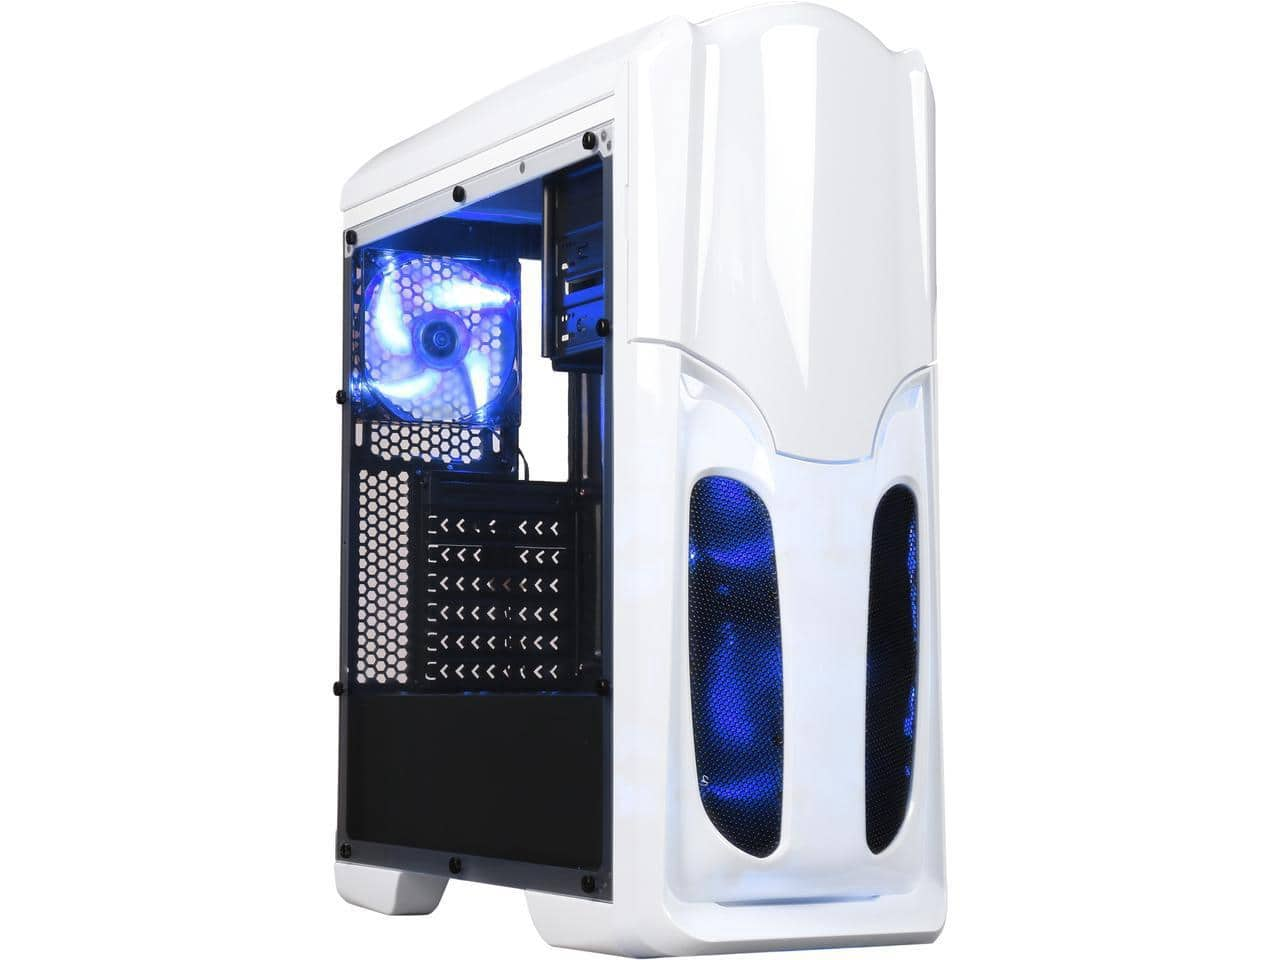 DIYPC VT380-W White Windowed ATX Mid Tower Gaming Computer Case for $24.89 AR or Cooler Master MasterBox Lite 3.1 mATX Case for $26.99 AR + Free Ship @ Newegg